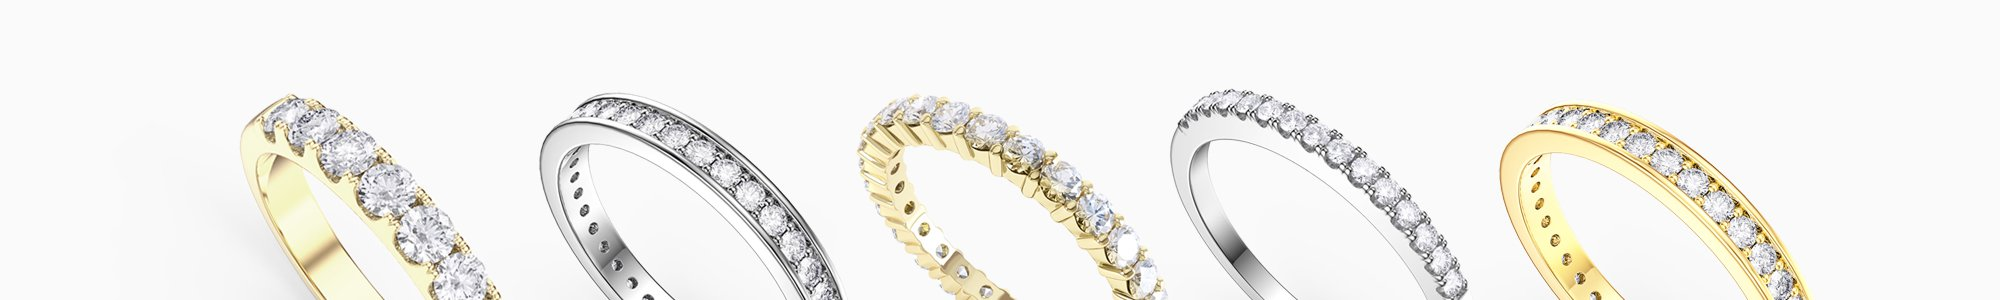 Shop Wedding Rings by Jian London.  Buy direct and save from our wide selection of wedding rings at the Jian London Jewellery Store. Free UK Delivery